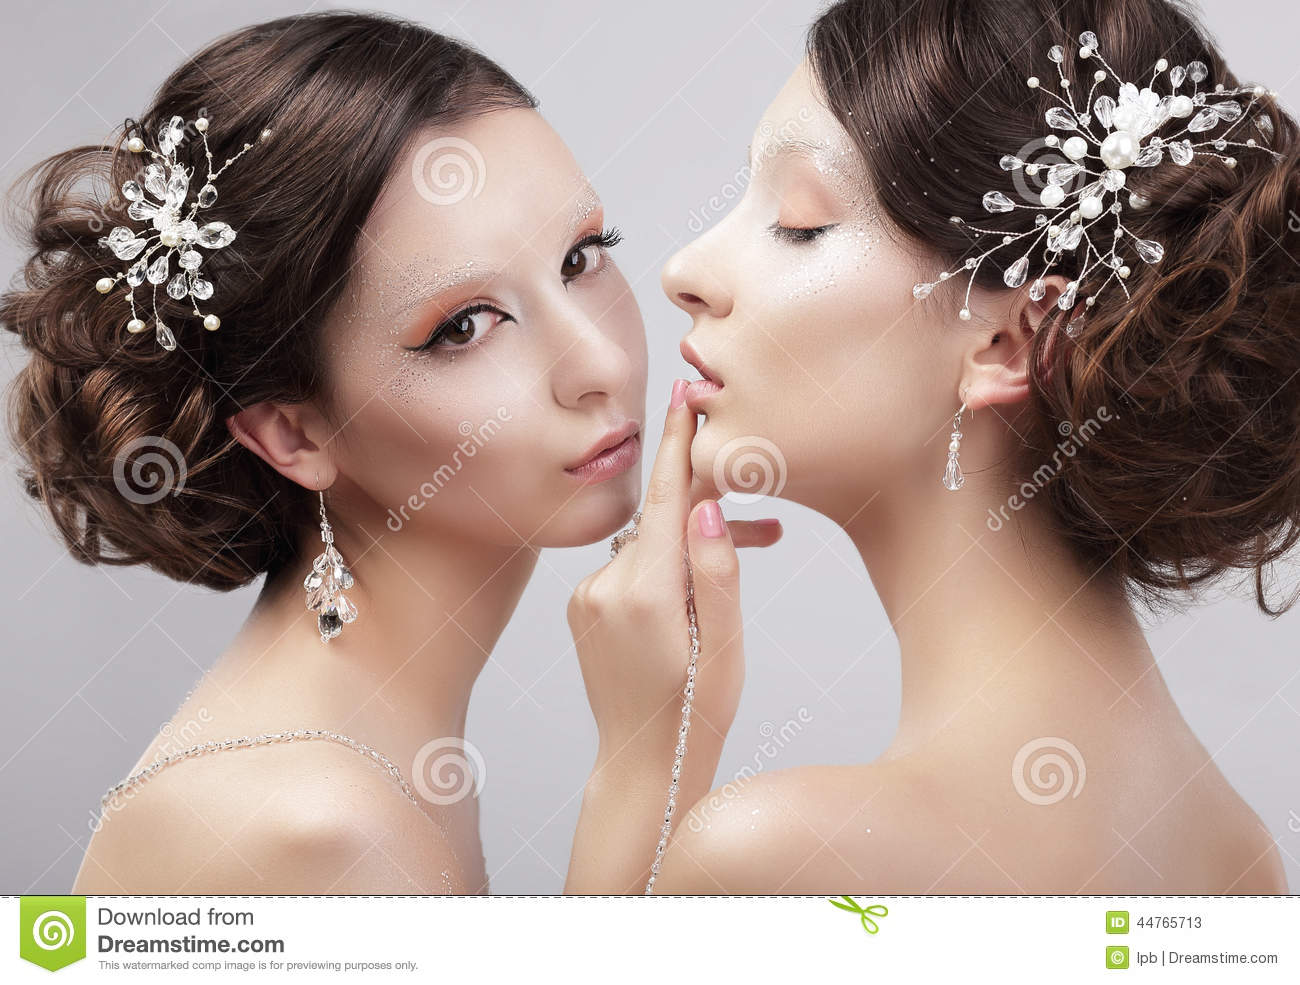 Sensuality. Two Women Fashion Models with Trendy Make-up